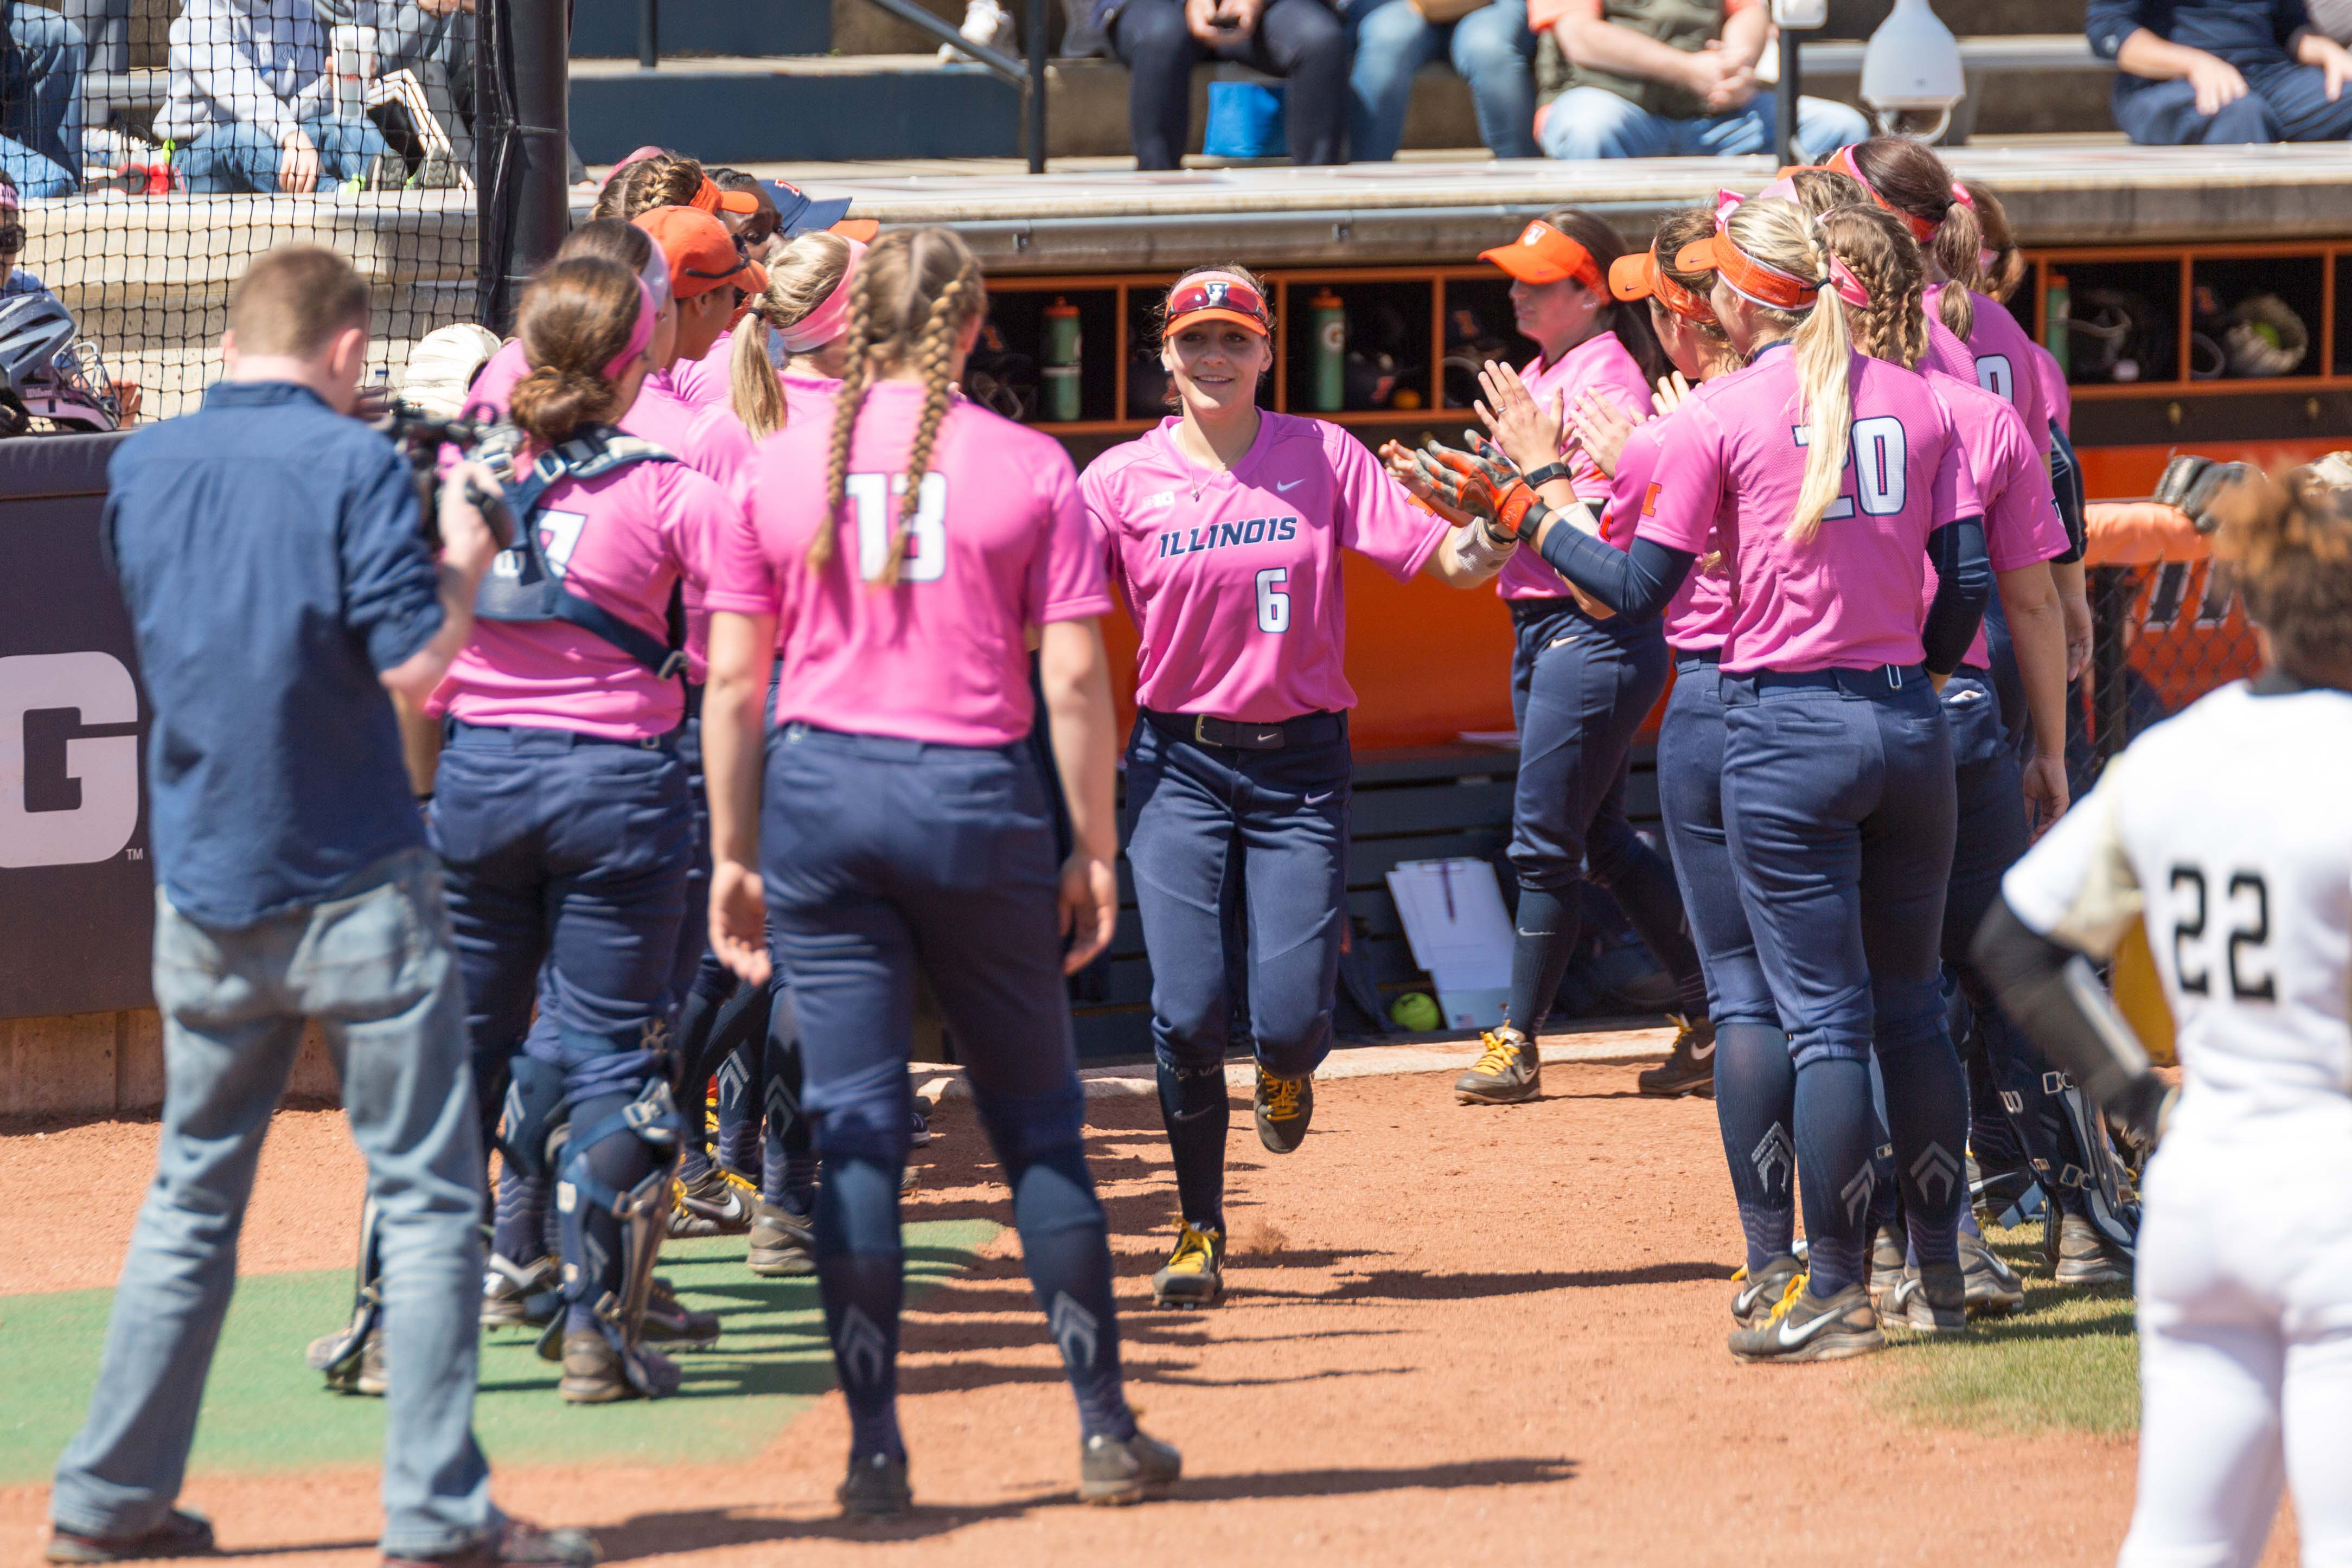 Illinois Athletics, Colleges Against Cancer, Illini Pride and the American Cancer Society will be hosting a cancer fundraiser on April 28 at Eichelberger Field. The fundraiser features various sports-themed activities for the purchase of a $5 ticket, which includes entry to the Illinois vs. Wisconsin softball game after the event.